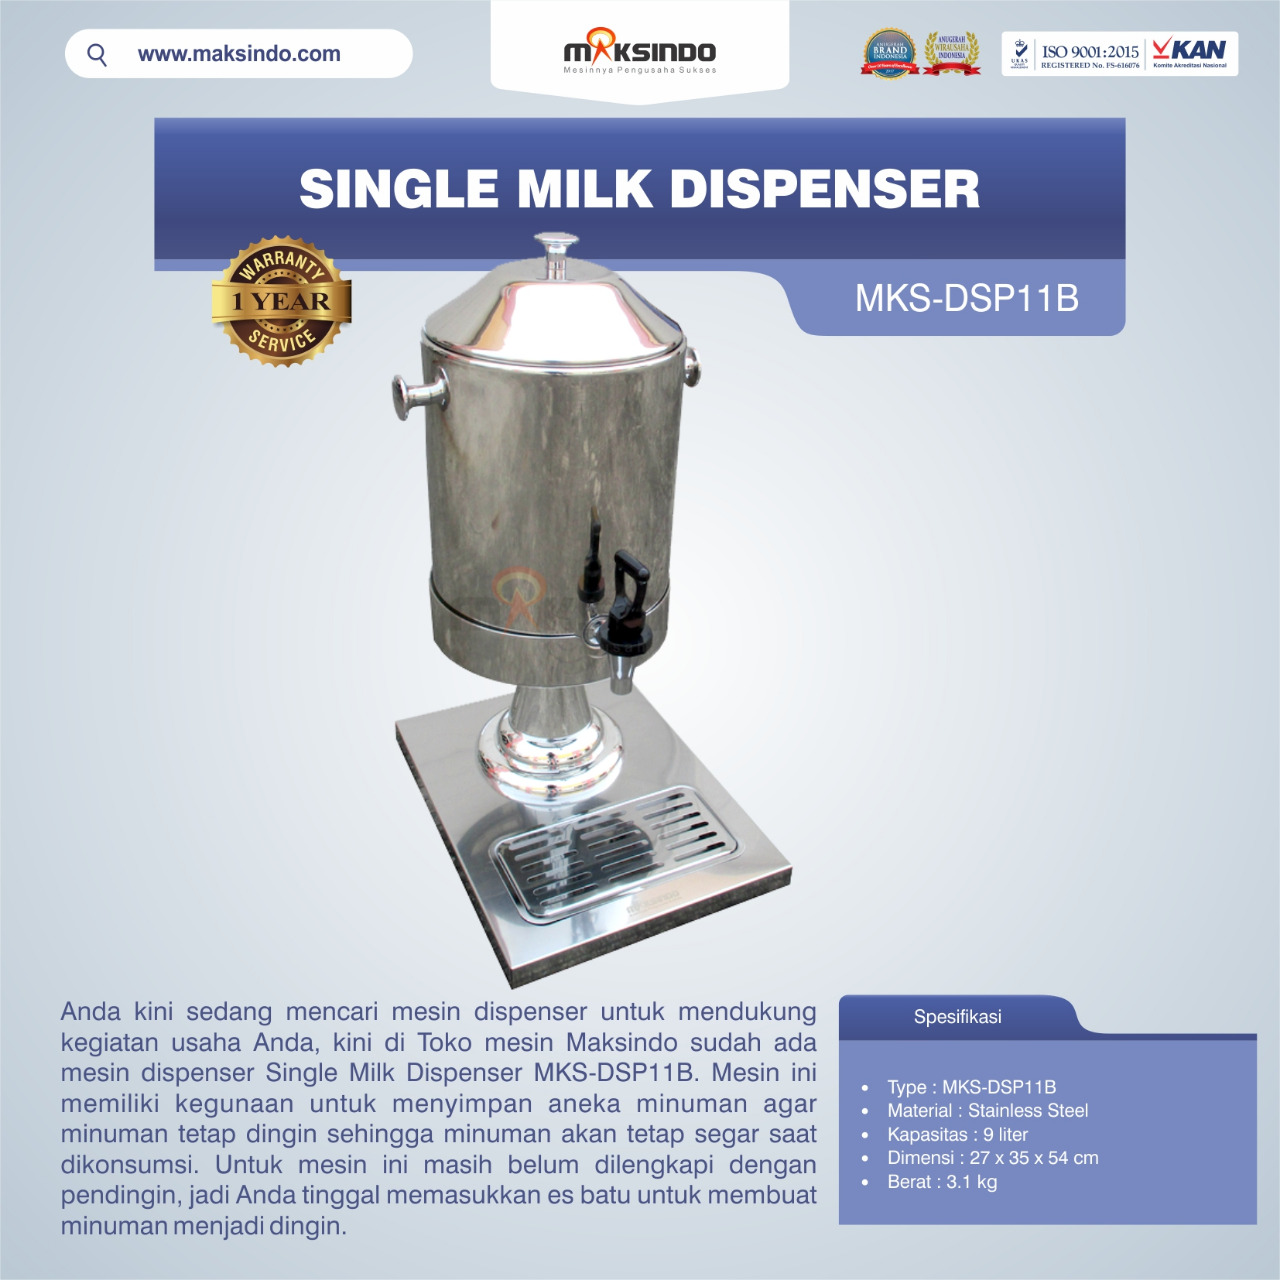 Jual Single Milk Dispenser MKS-DSP11B di Bali